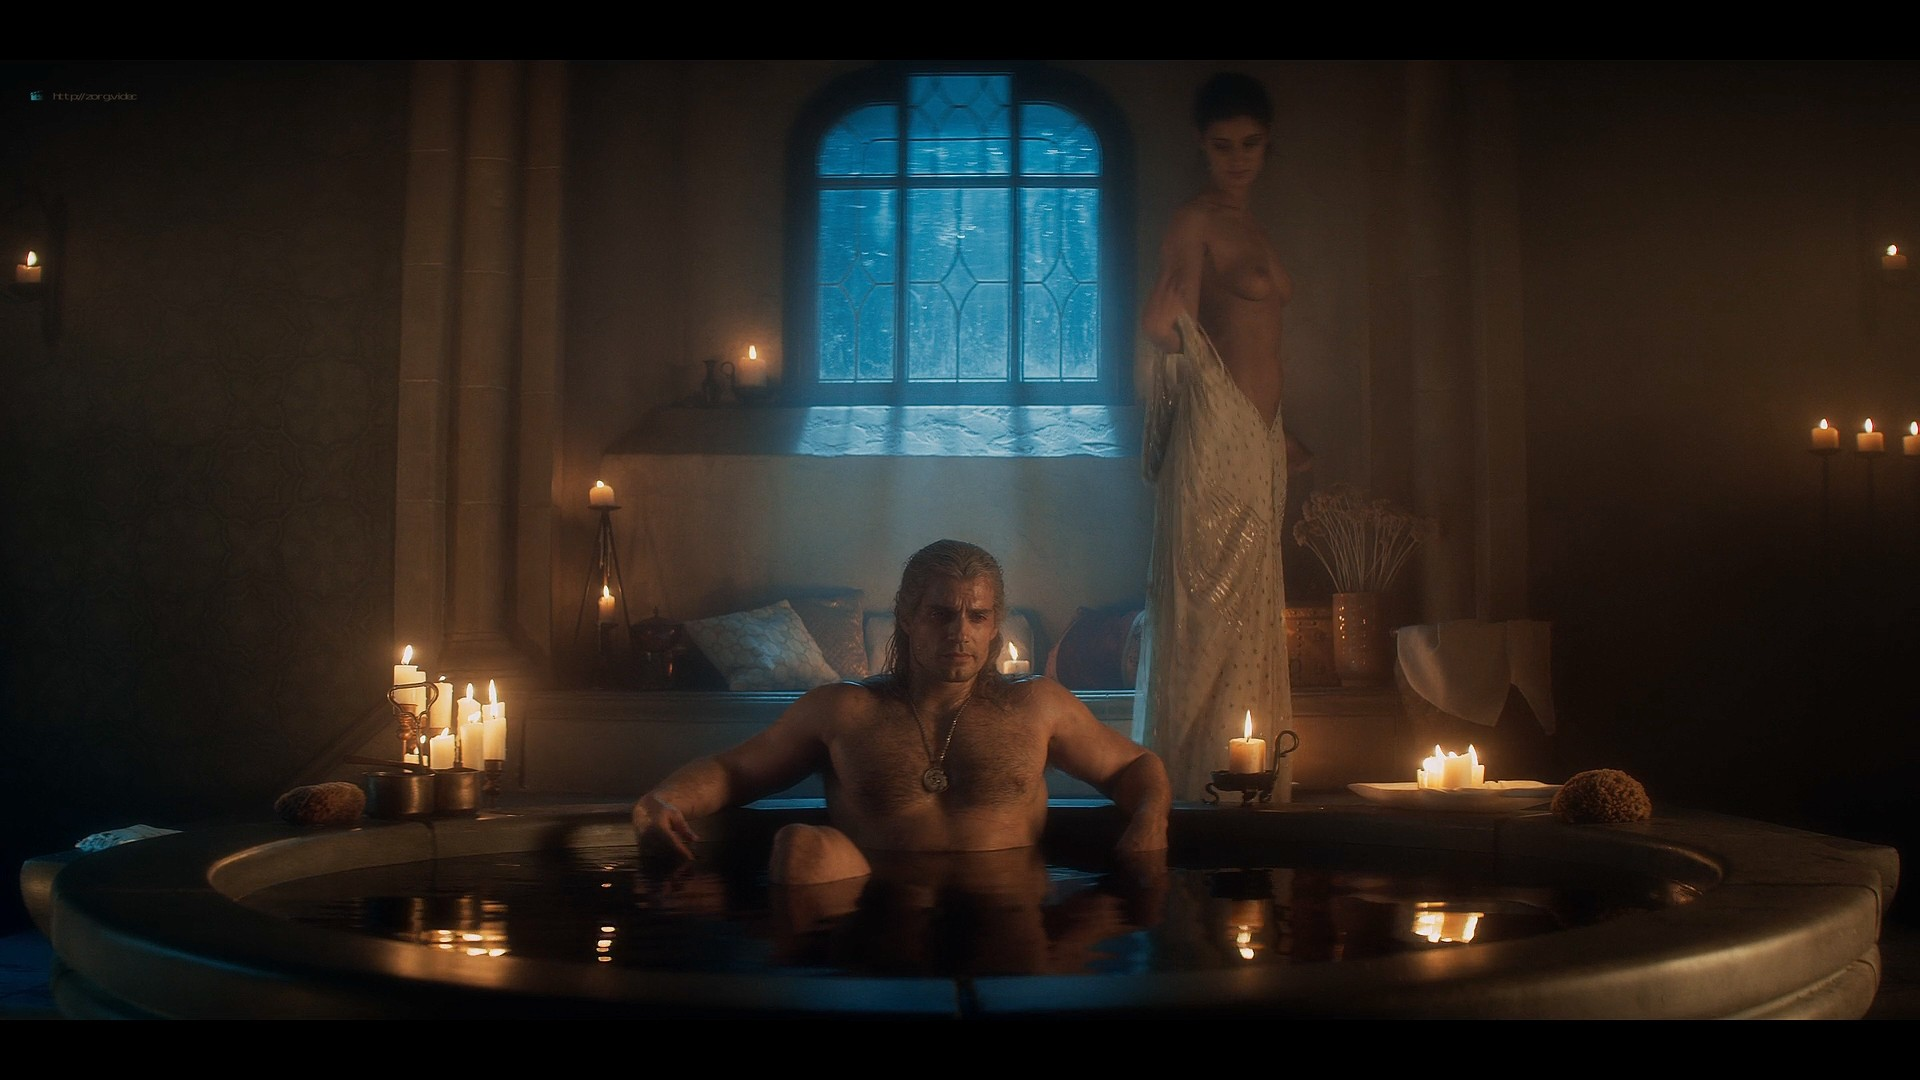 Anya Chalotra nude others nude too - The Witcher (2019) s1e5-6 HD 1080p WEB (14)